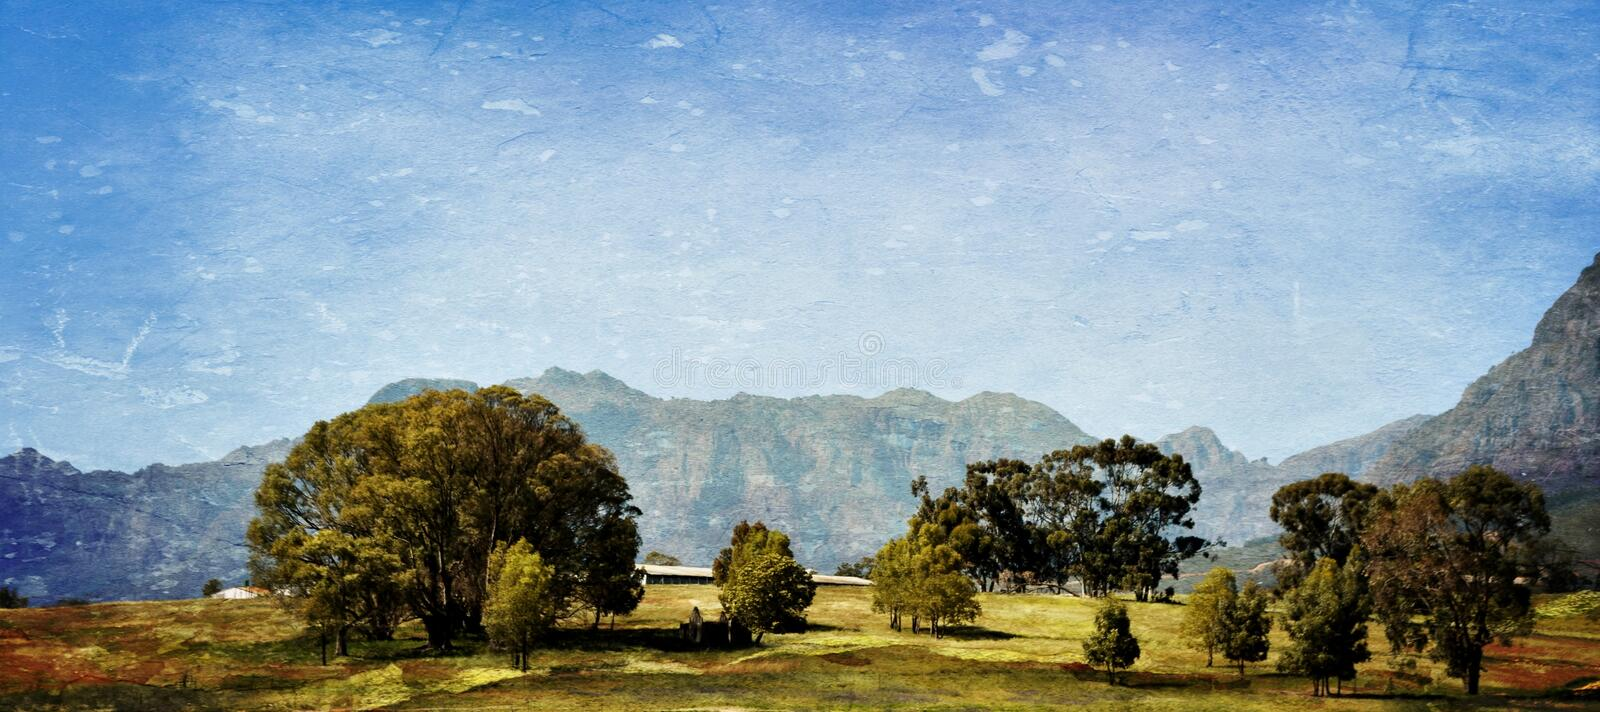 Hottentots Holland Mountains. Landscape with the Hottentots Holland Mountains and trees on a meadow stock photo